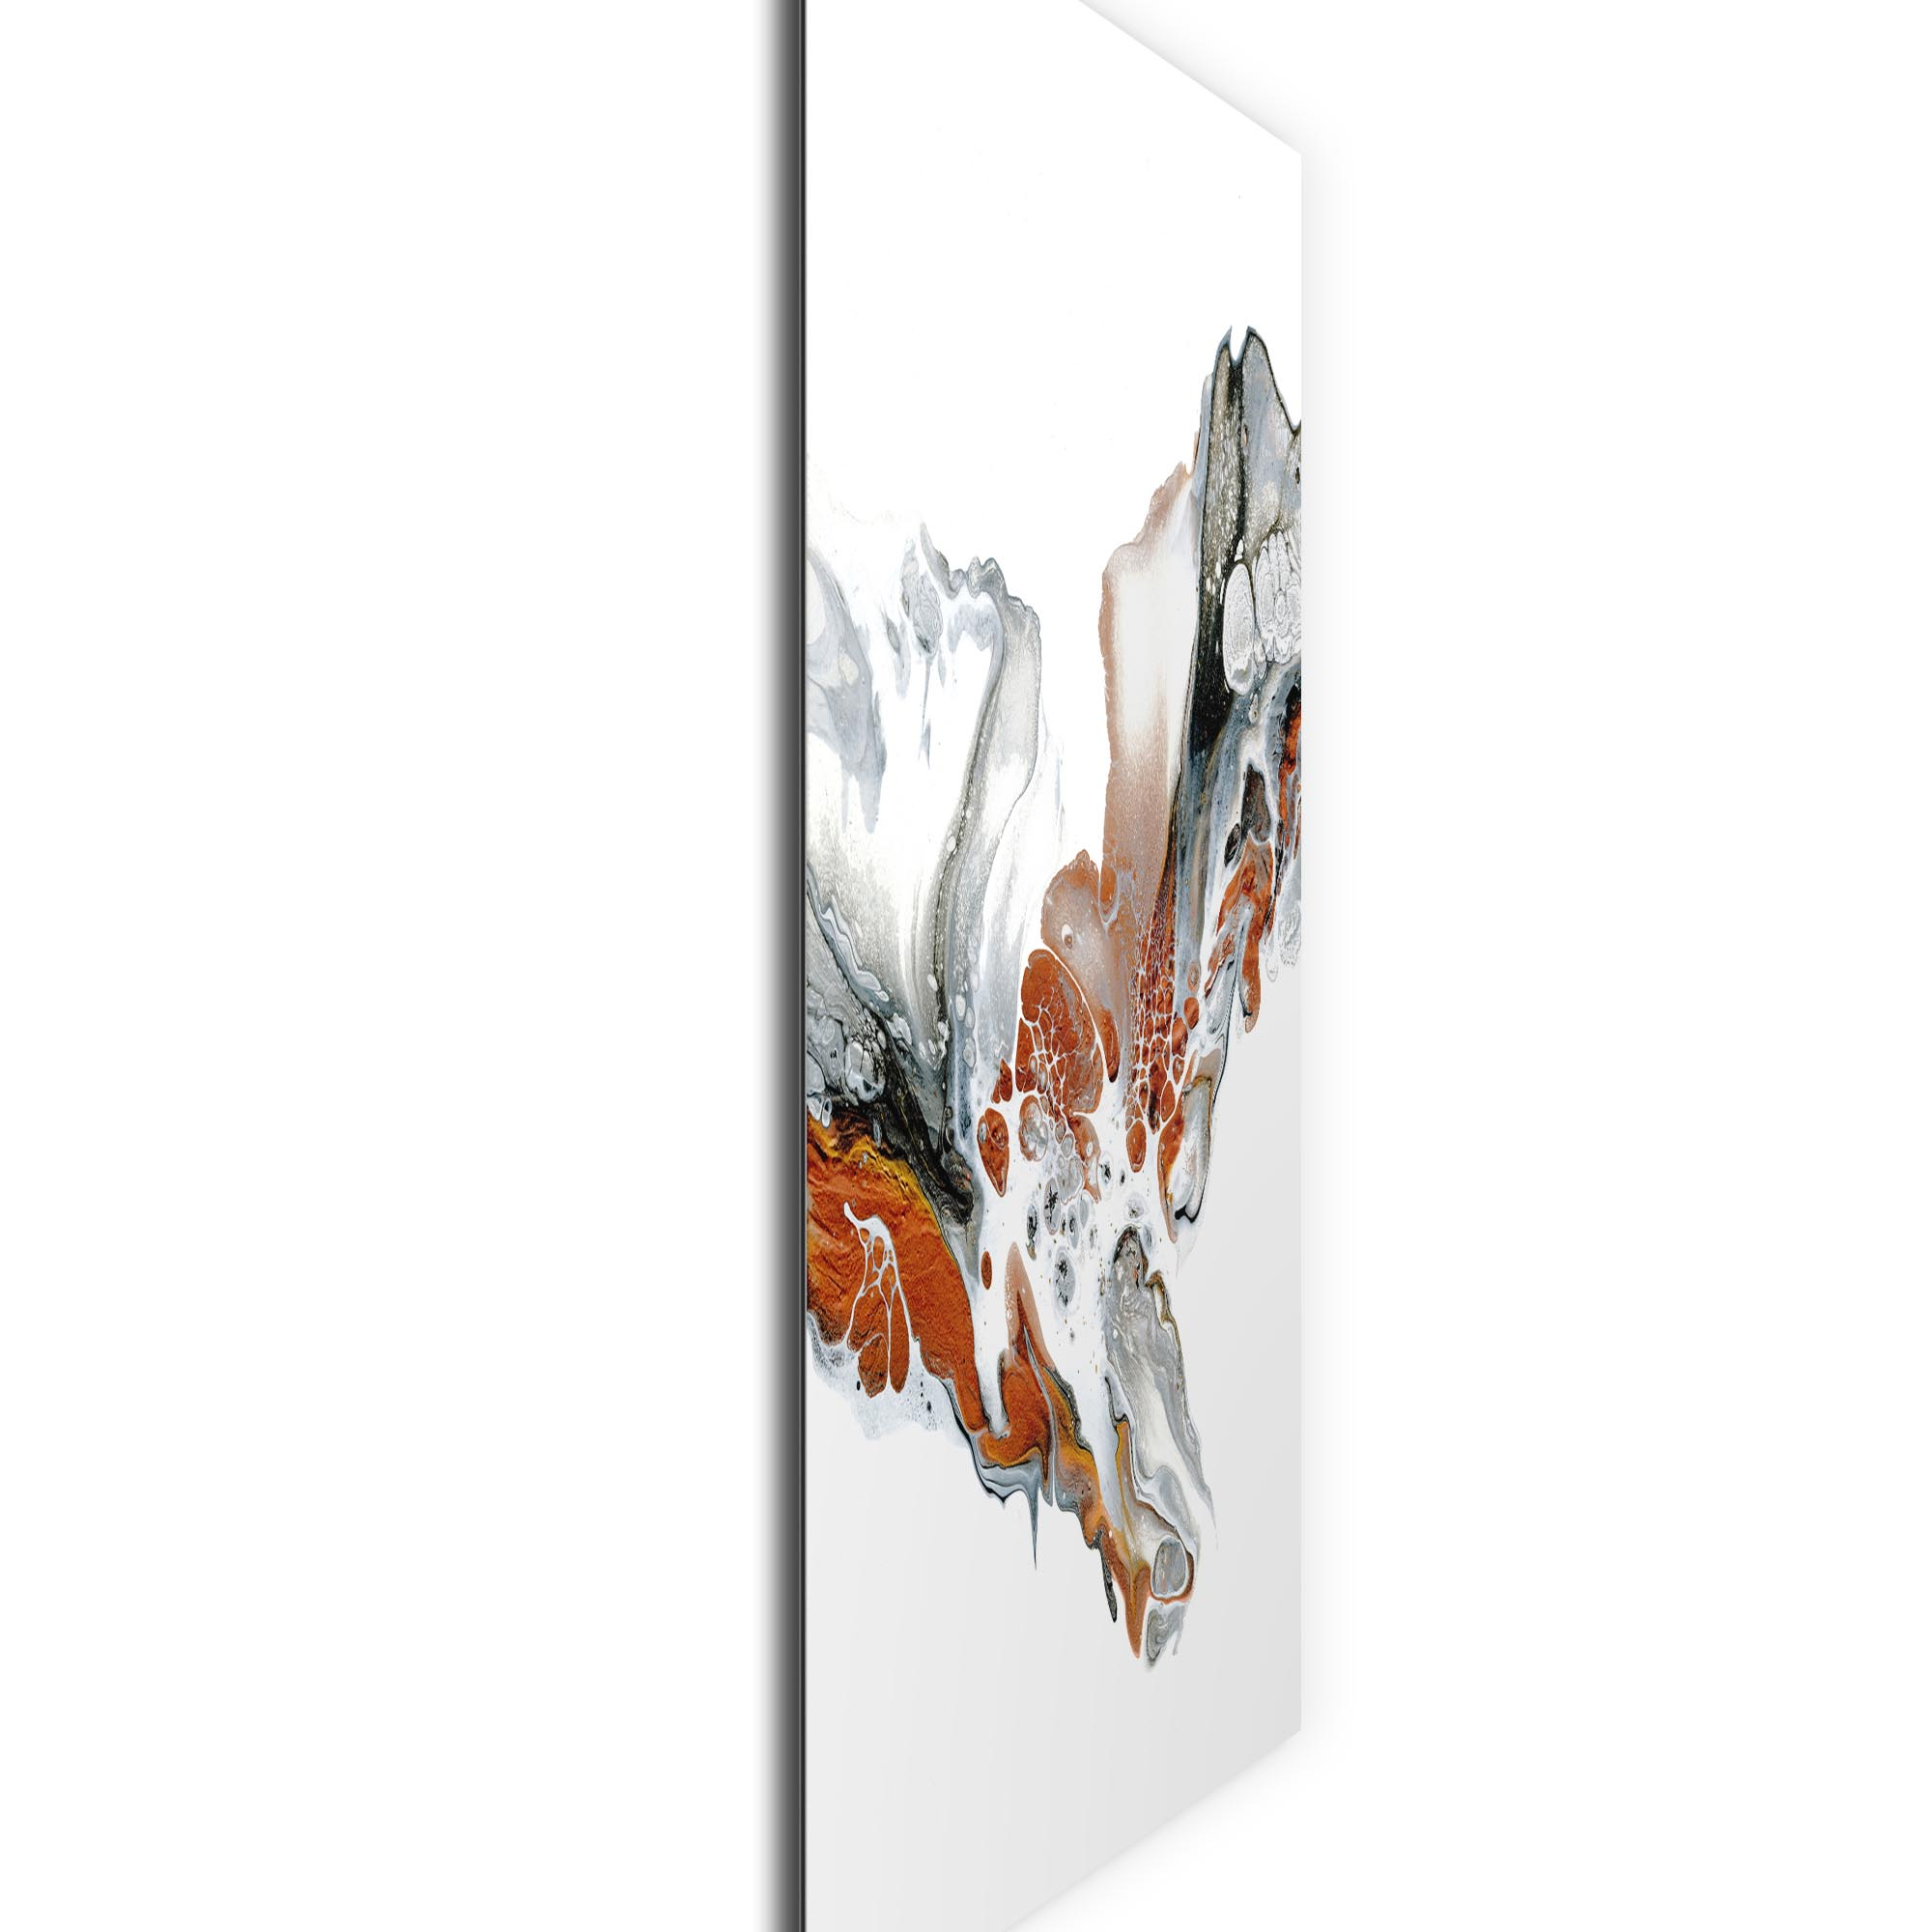 Cascade by Elana Reiter - Abstract Wall Art, Modern Home Decor (24in x 32in) - Image 2